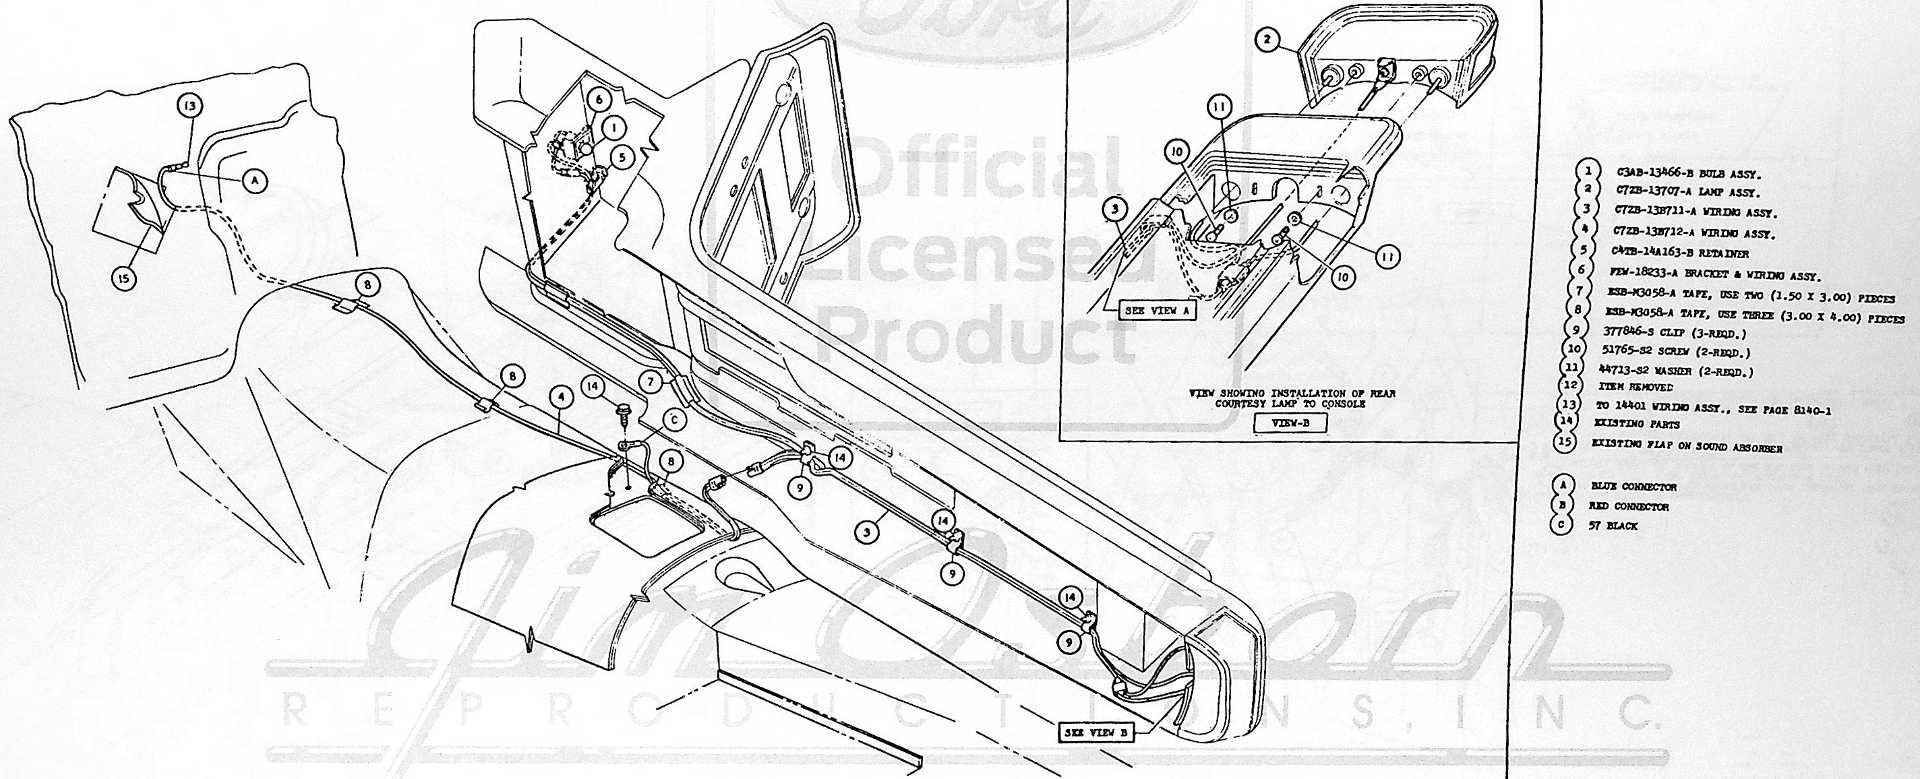 1966 Mustang Coupe Wiring Question Vintage Mustang Forums